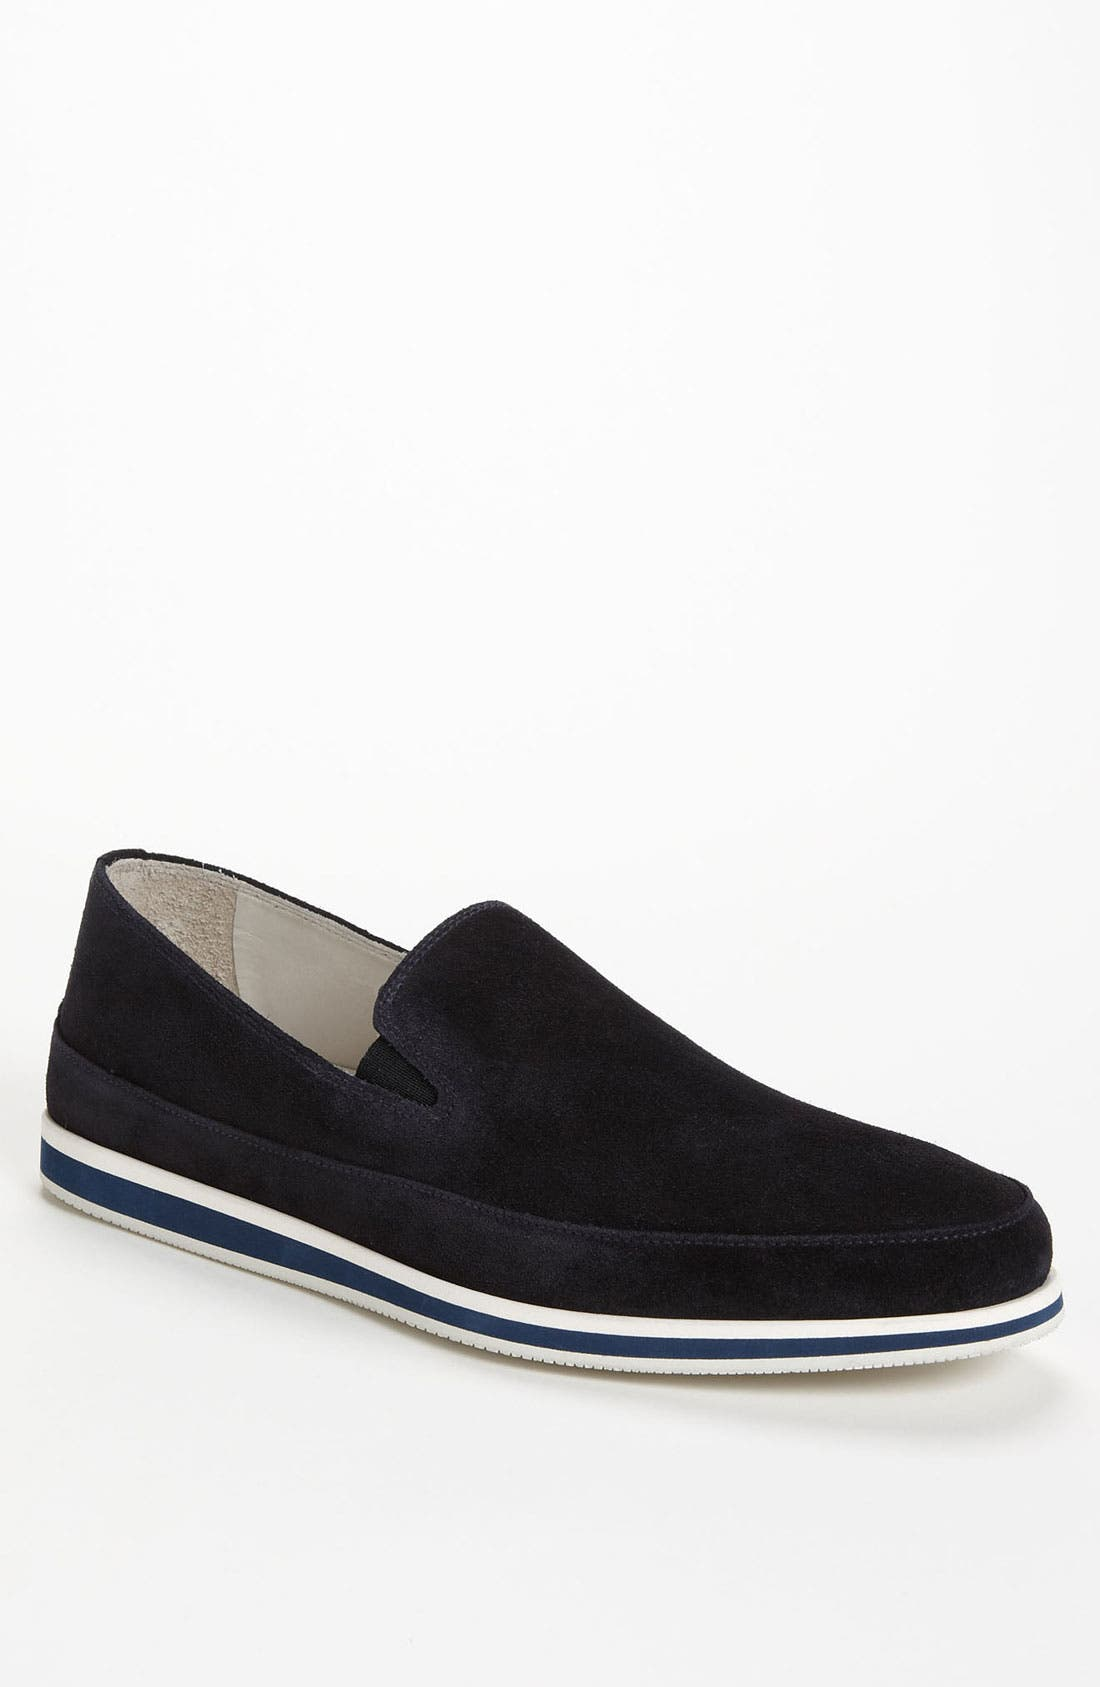 Main Image - Prada Suede Loafer